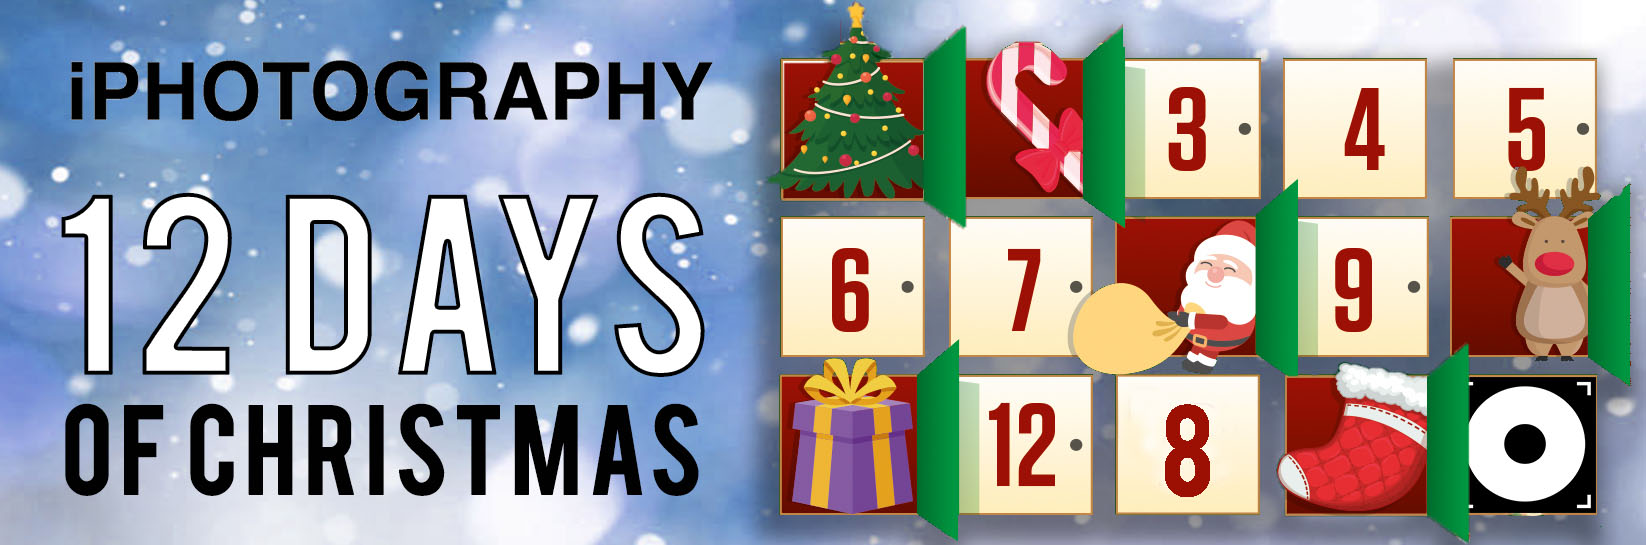 banner iphotography blue ribbon 12 days of christmas